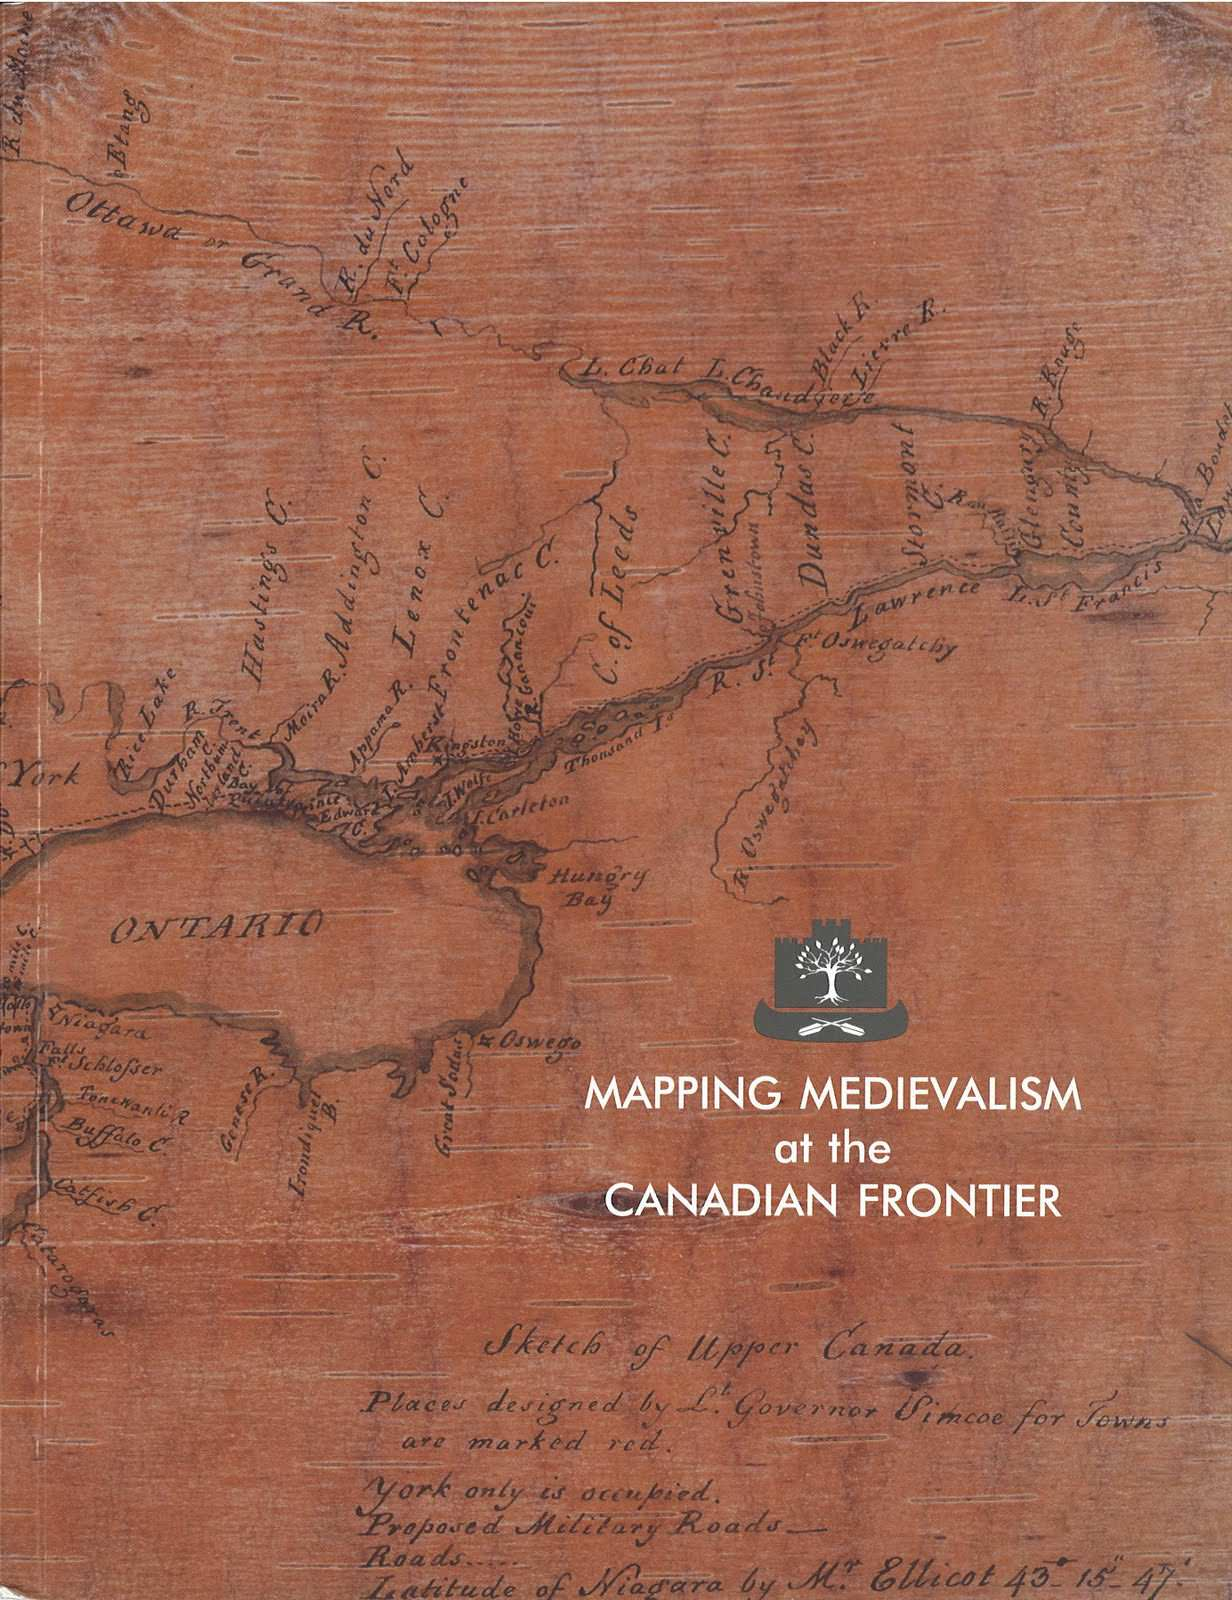 Mapping Medievalism at the Canadian Frontier